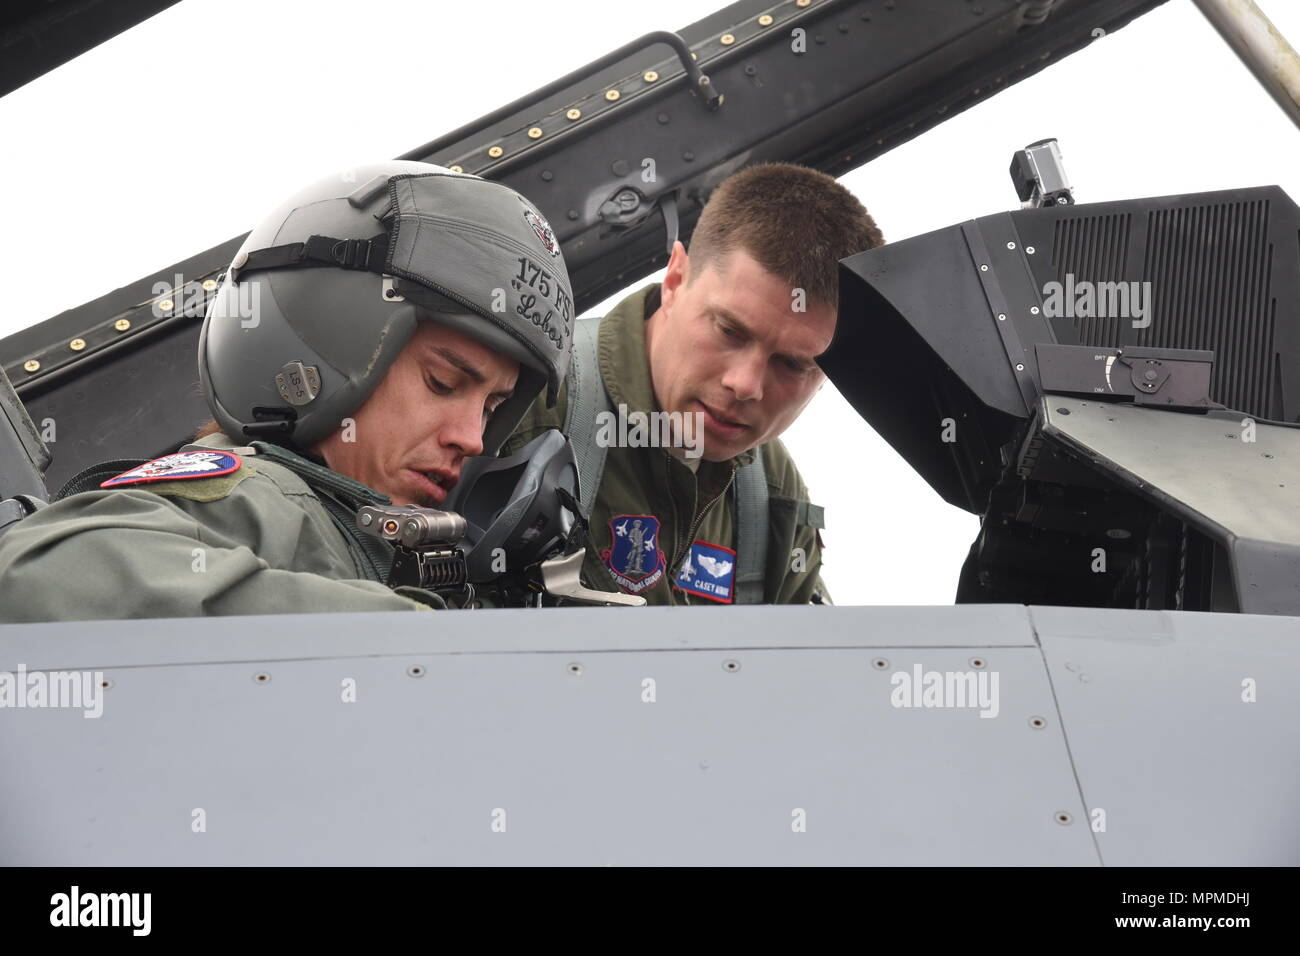 Capt. Casey Minor, 175th Fighter Squadron pilot, explains the controls and instruments of the F-16 to Professional Bull Rider, Stetson Lawrence, before his F-16 orientation ride at Joe Boss Field, S.D. on March 29, 2017. The PBR organization visited the 114th Fighter Wing as a part of a community outreach program. (Air National Guard photo by Staff Sgt. Duane Duimstra/Released) - Stock Image